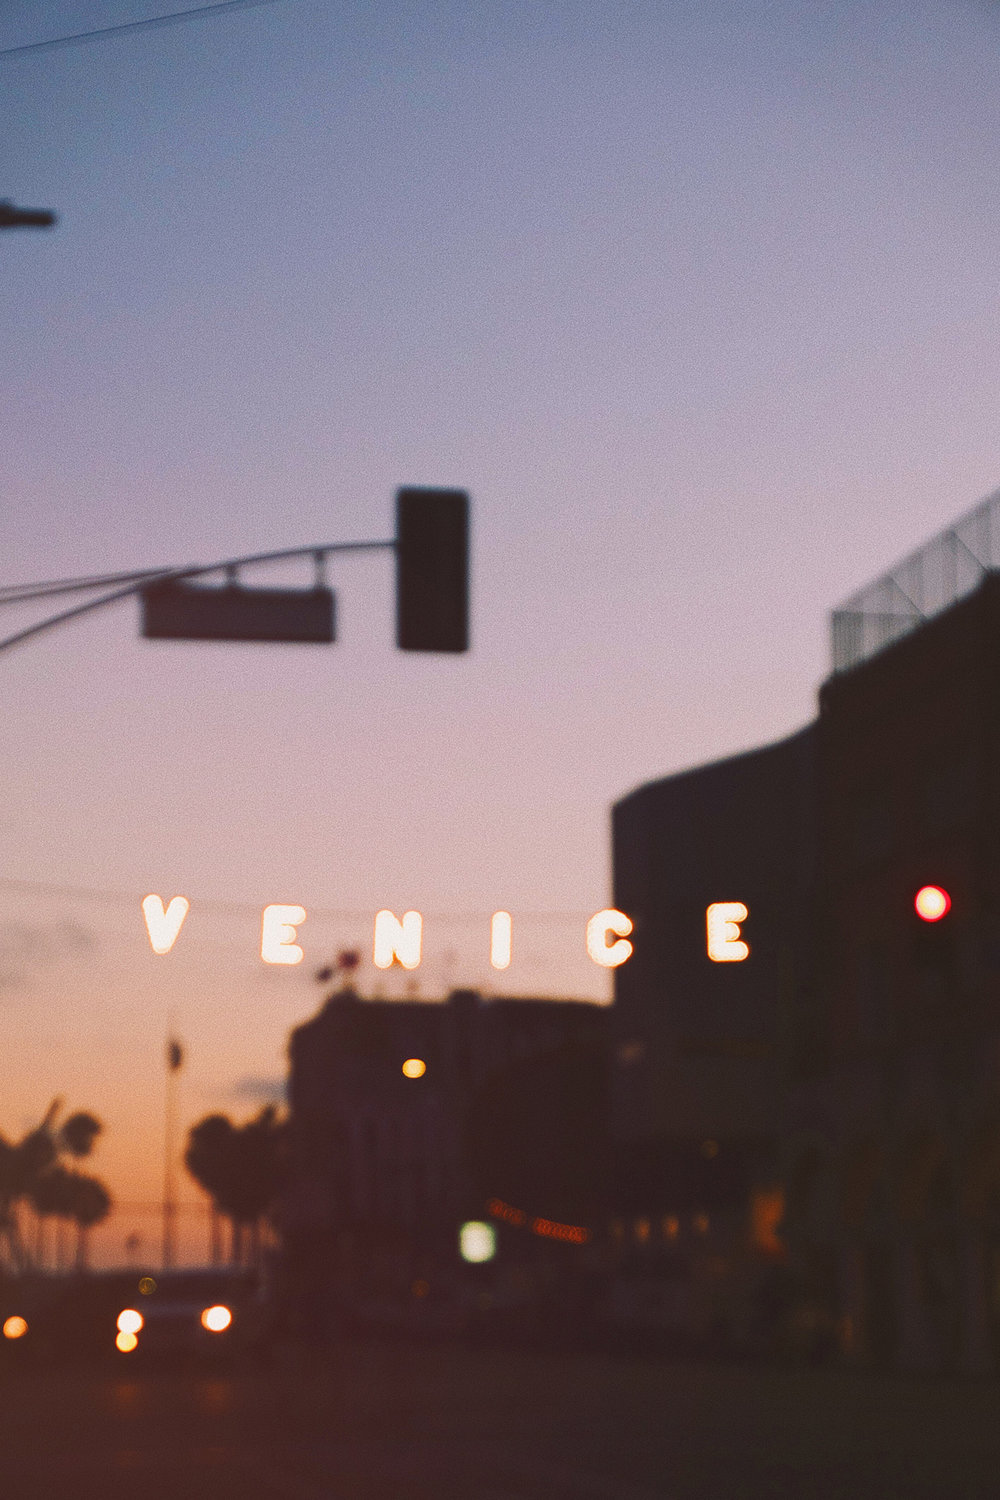 Venice Beach / Travel Photography / Sunset / Neon Sign / Kelly Fiance Creative